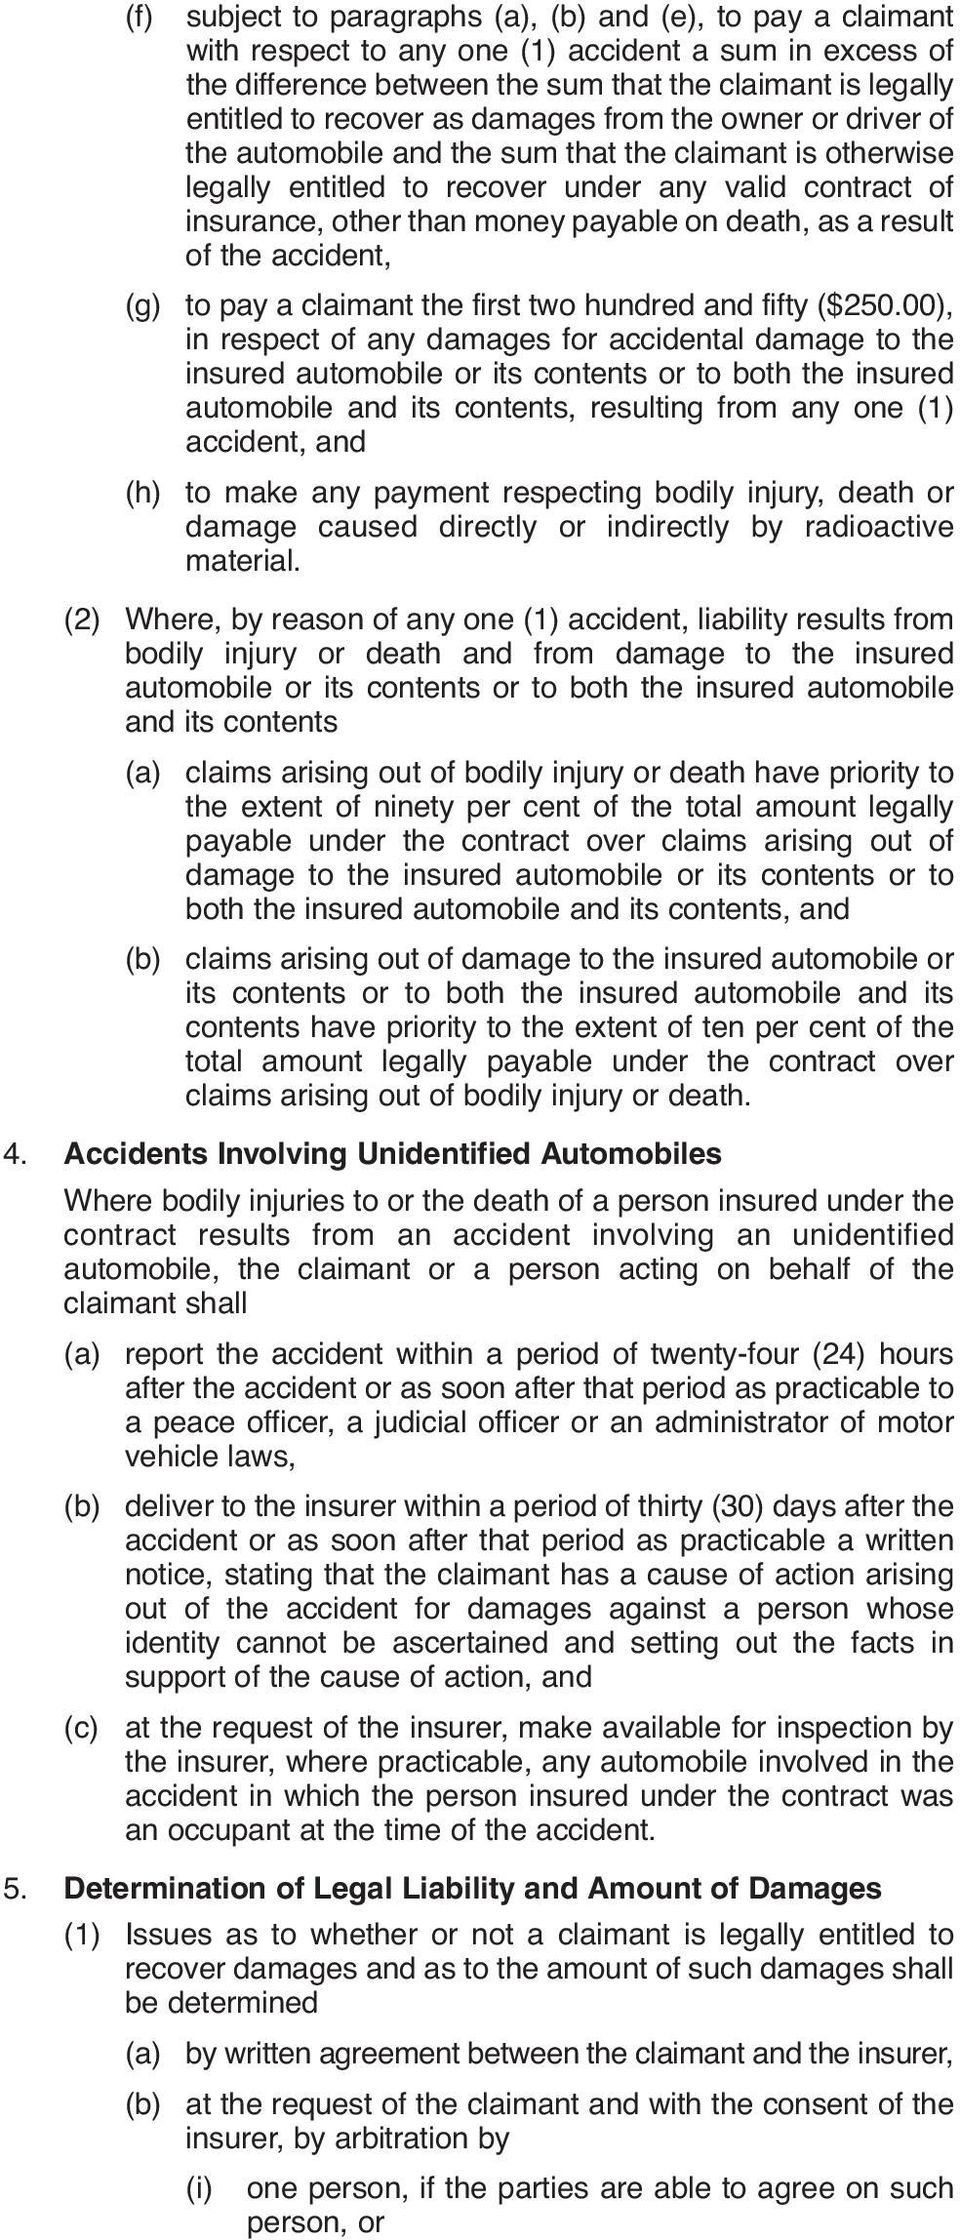 as a result of the accident, (g) to pay a claimant the first two hundred and fifty ($250.